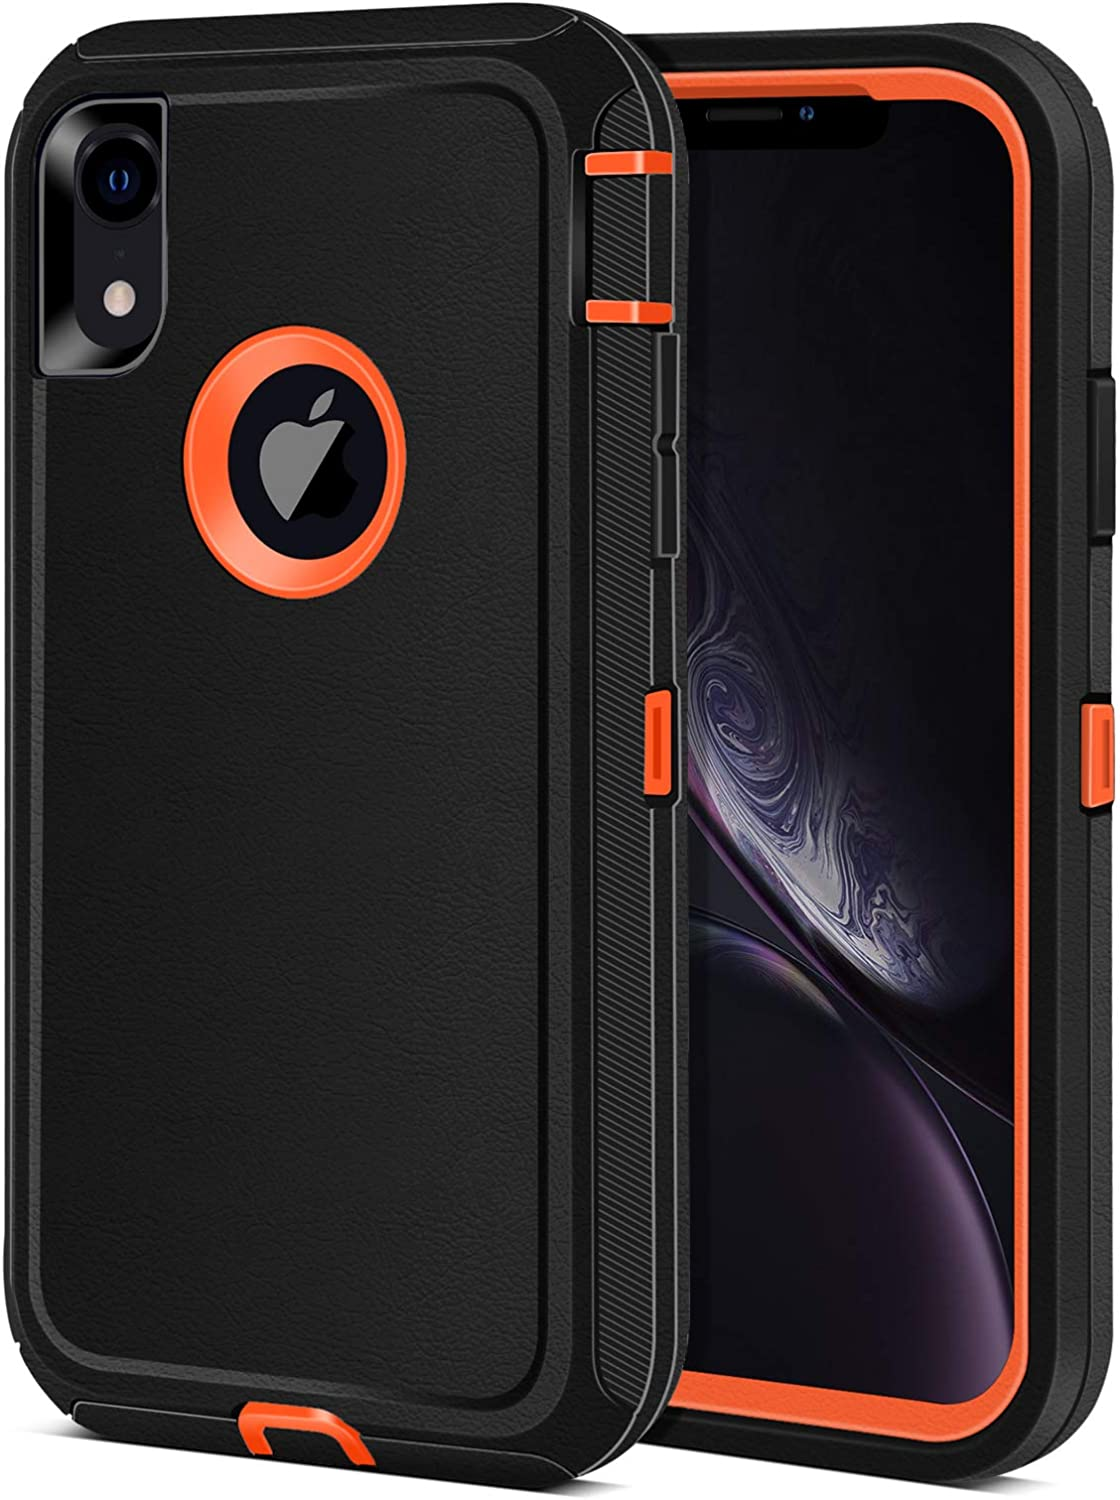 iPhone XR Case, Jiunai 3-Piece Heavy Duty Shockproof Rugged Drop Protection Dual Layer Armor Matte Cover Case ONLY Compatible with iPhone XR 10 R 2018 6.1'' Black Orange